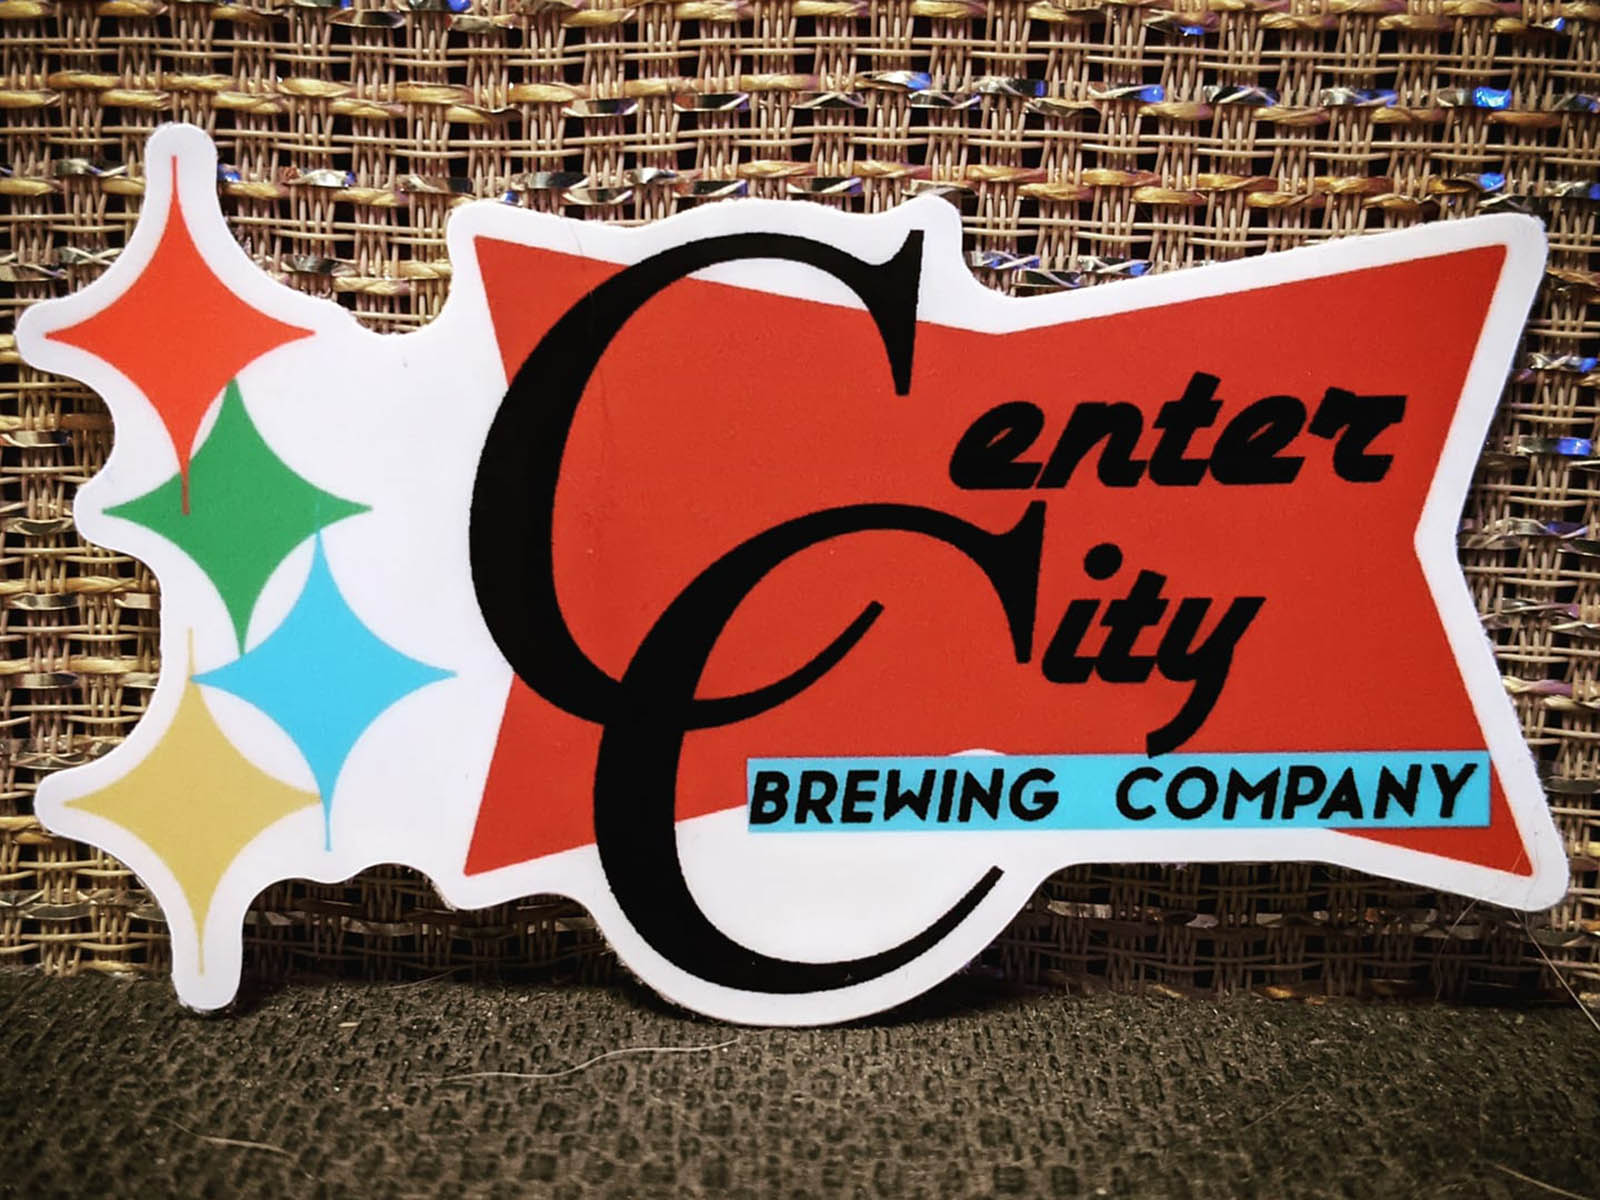 Center City Brewing